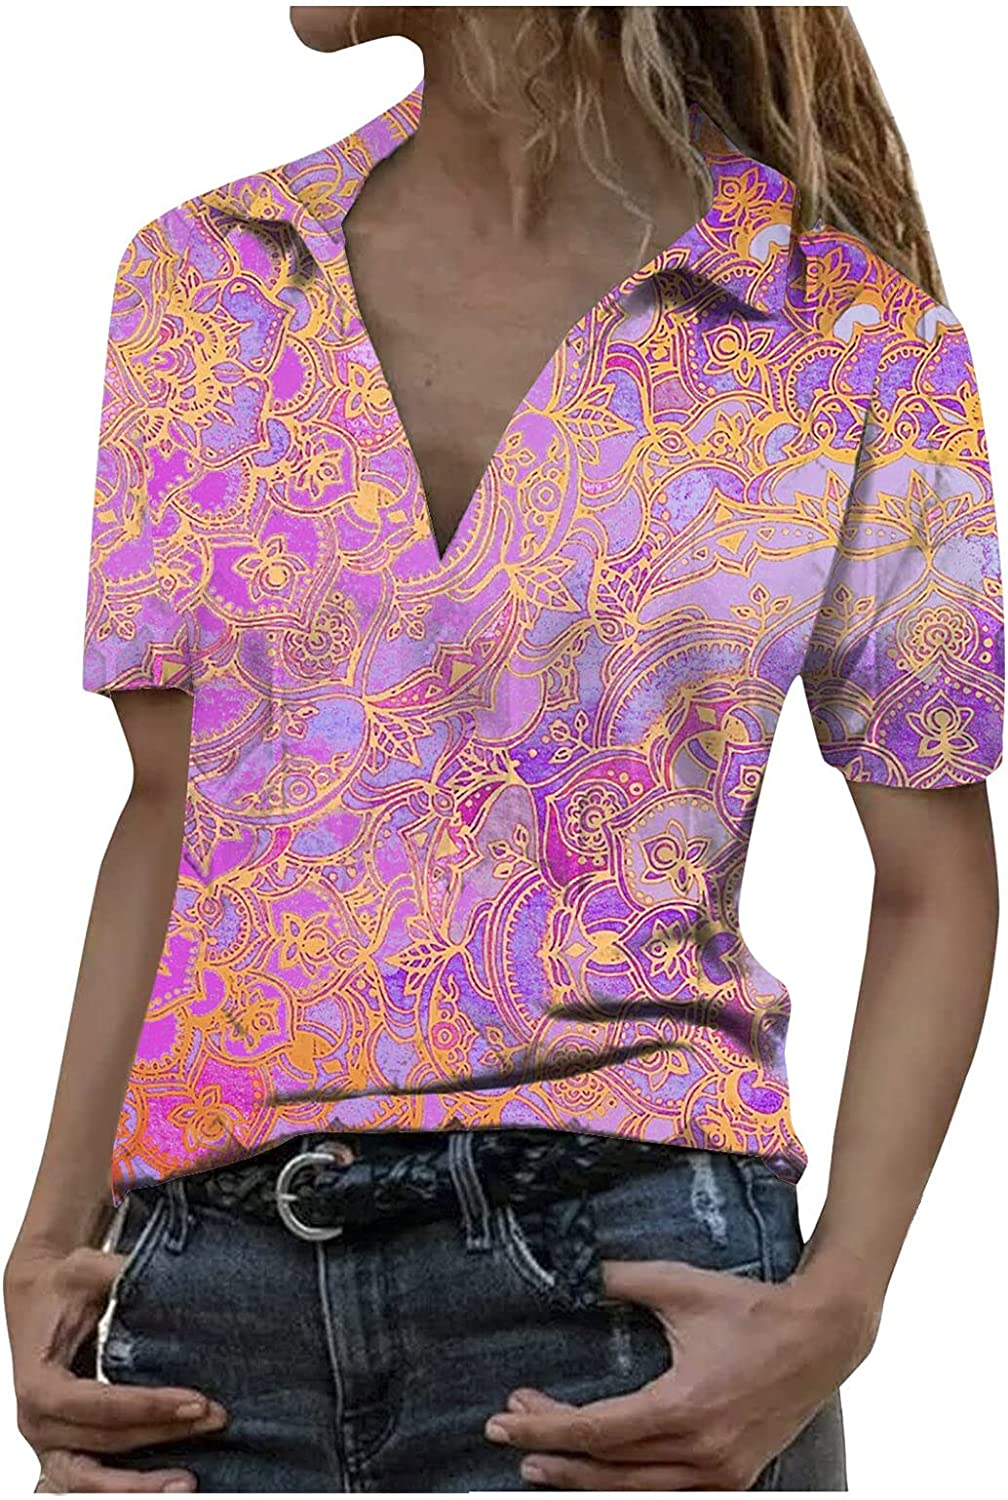 AODONG Cold Shoulder Tops for Women, Womens Summer Casual Print Cut Out Shoulder Tees Sexy V Neck Short Sleeve Shirts